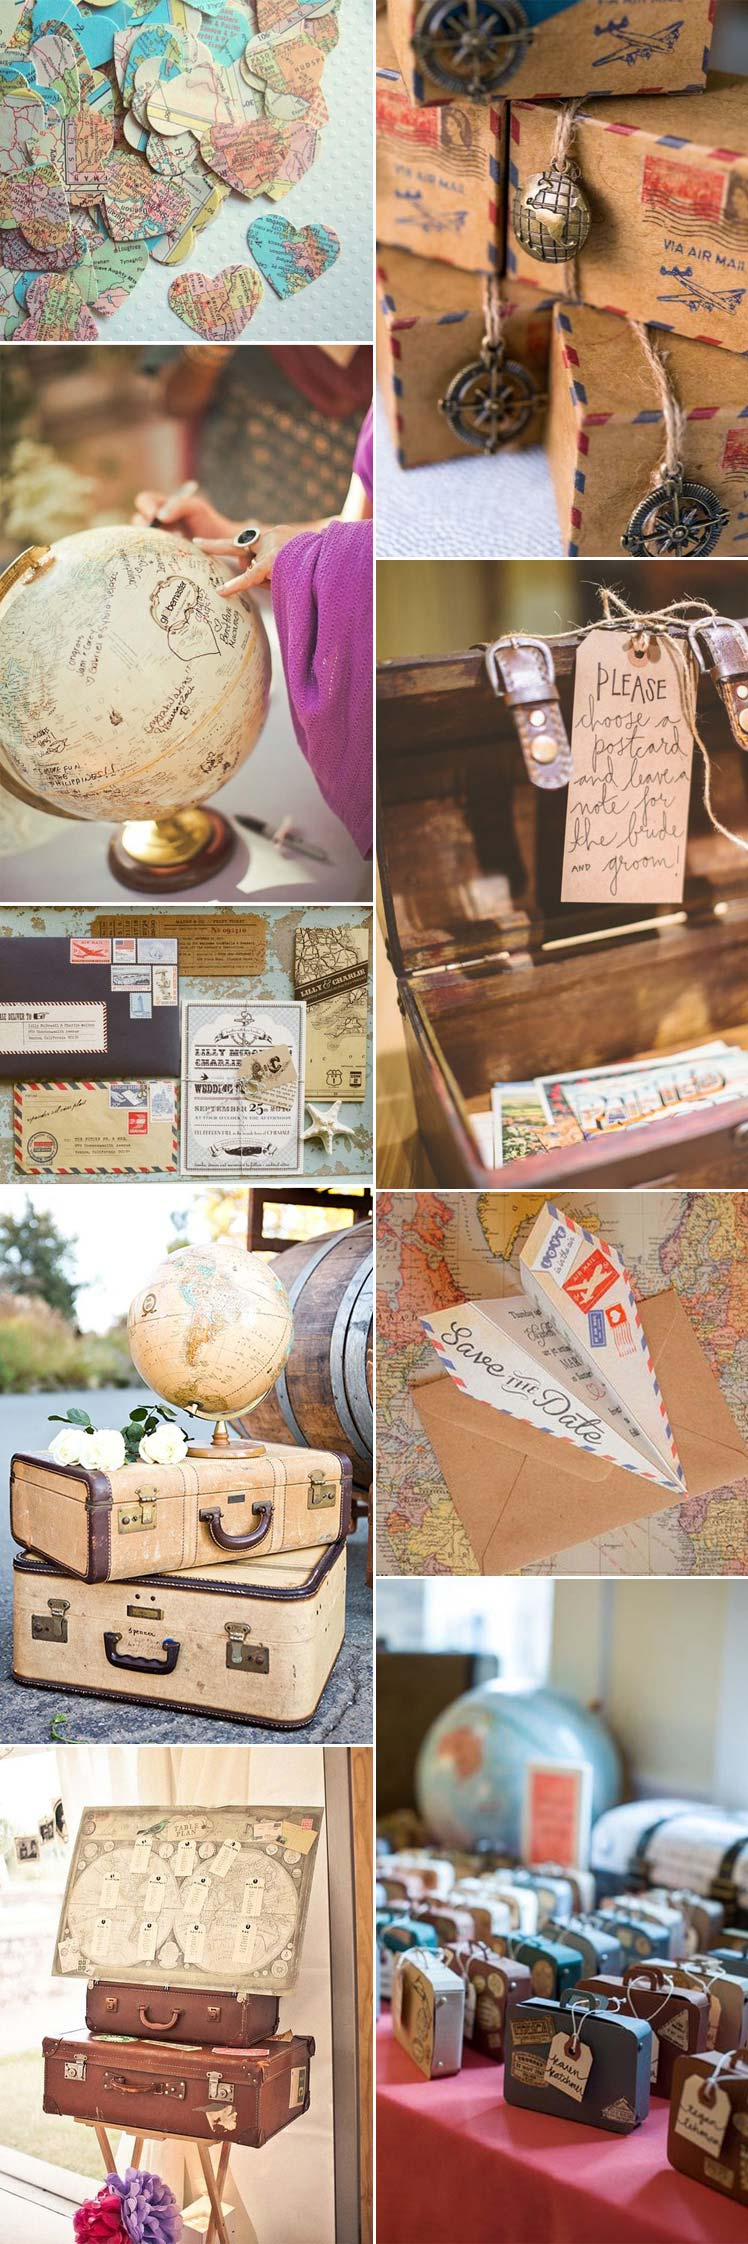 vintage travel theme wedding ideas